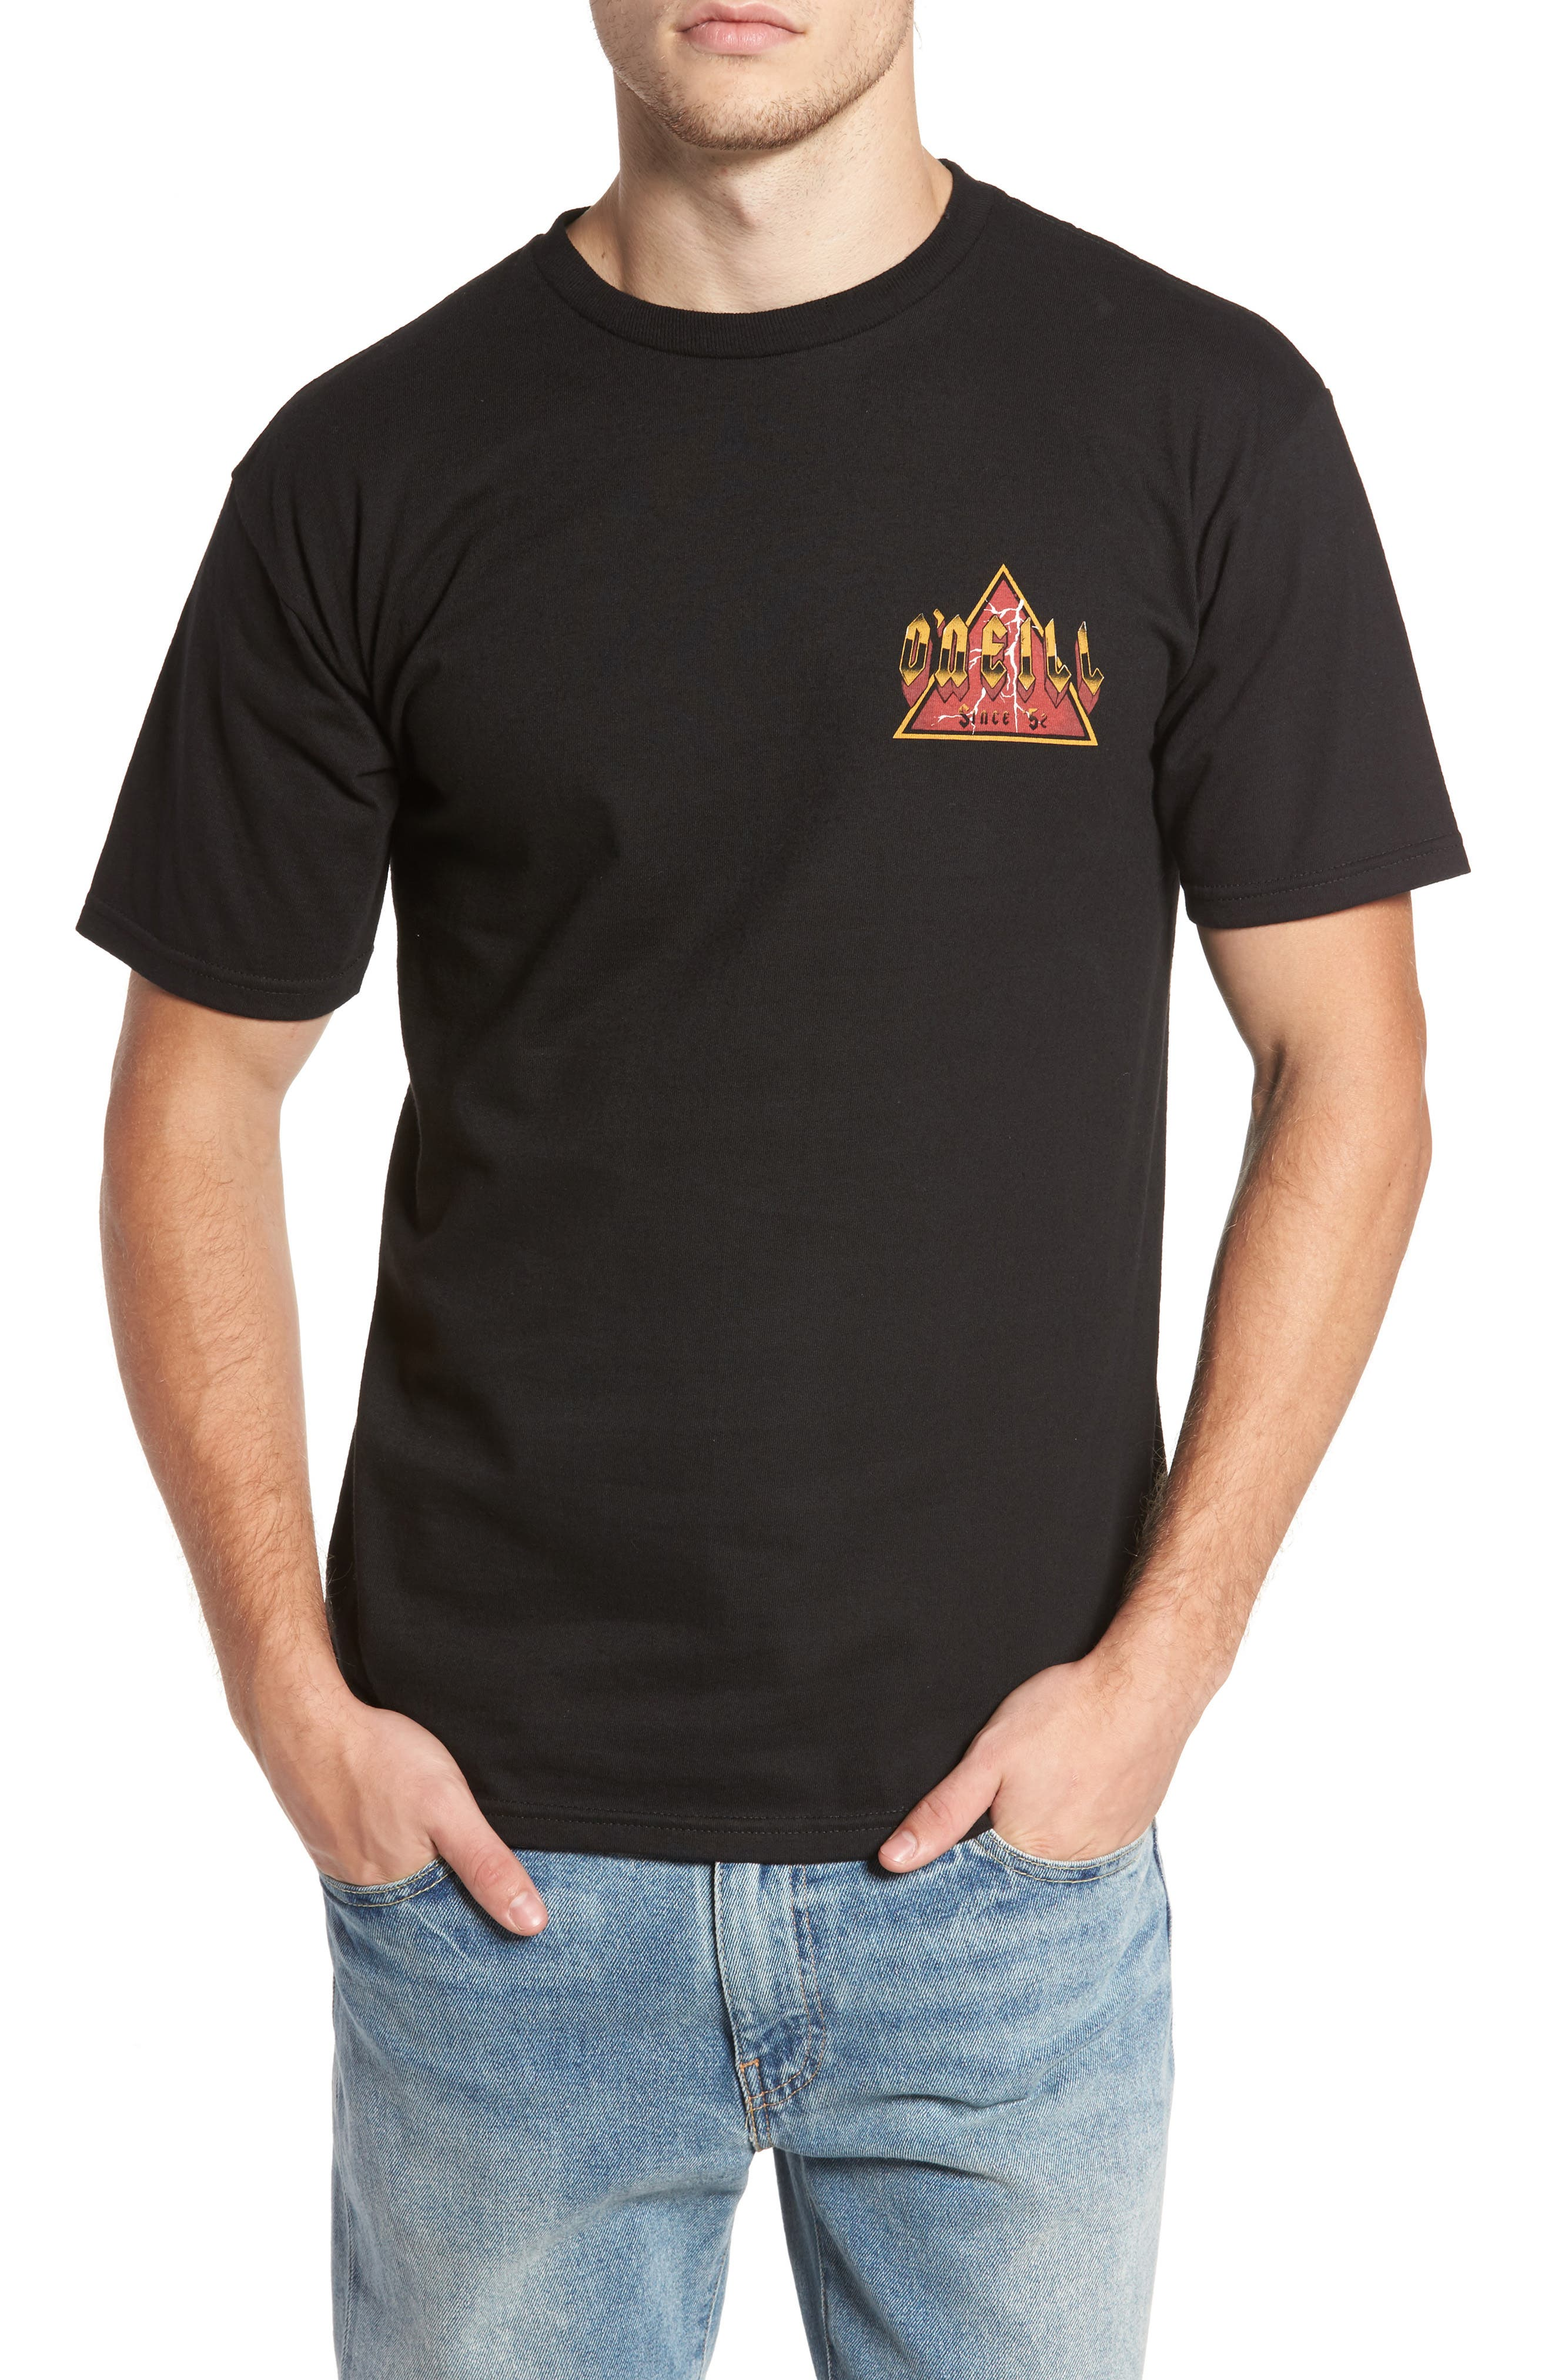 Alternate Image 1 Selected - O'Neill Metal Madness Graphic T-Shirt